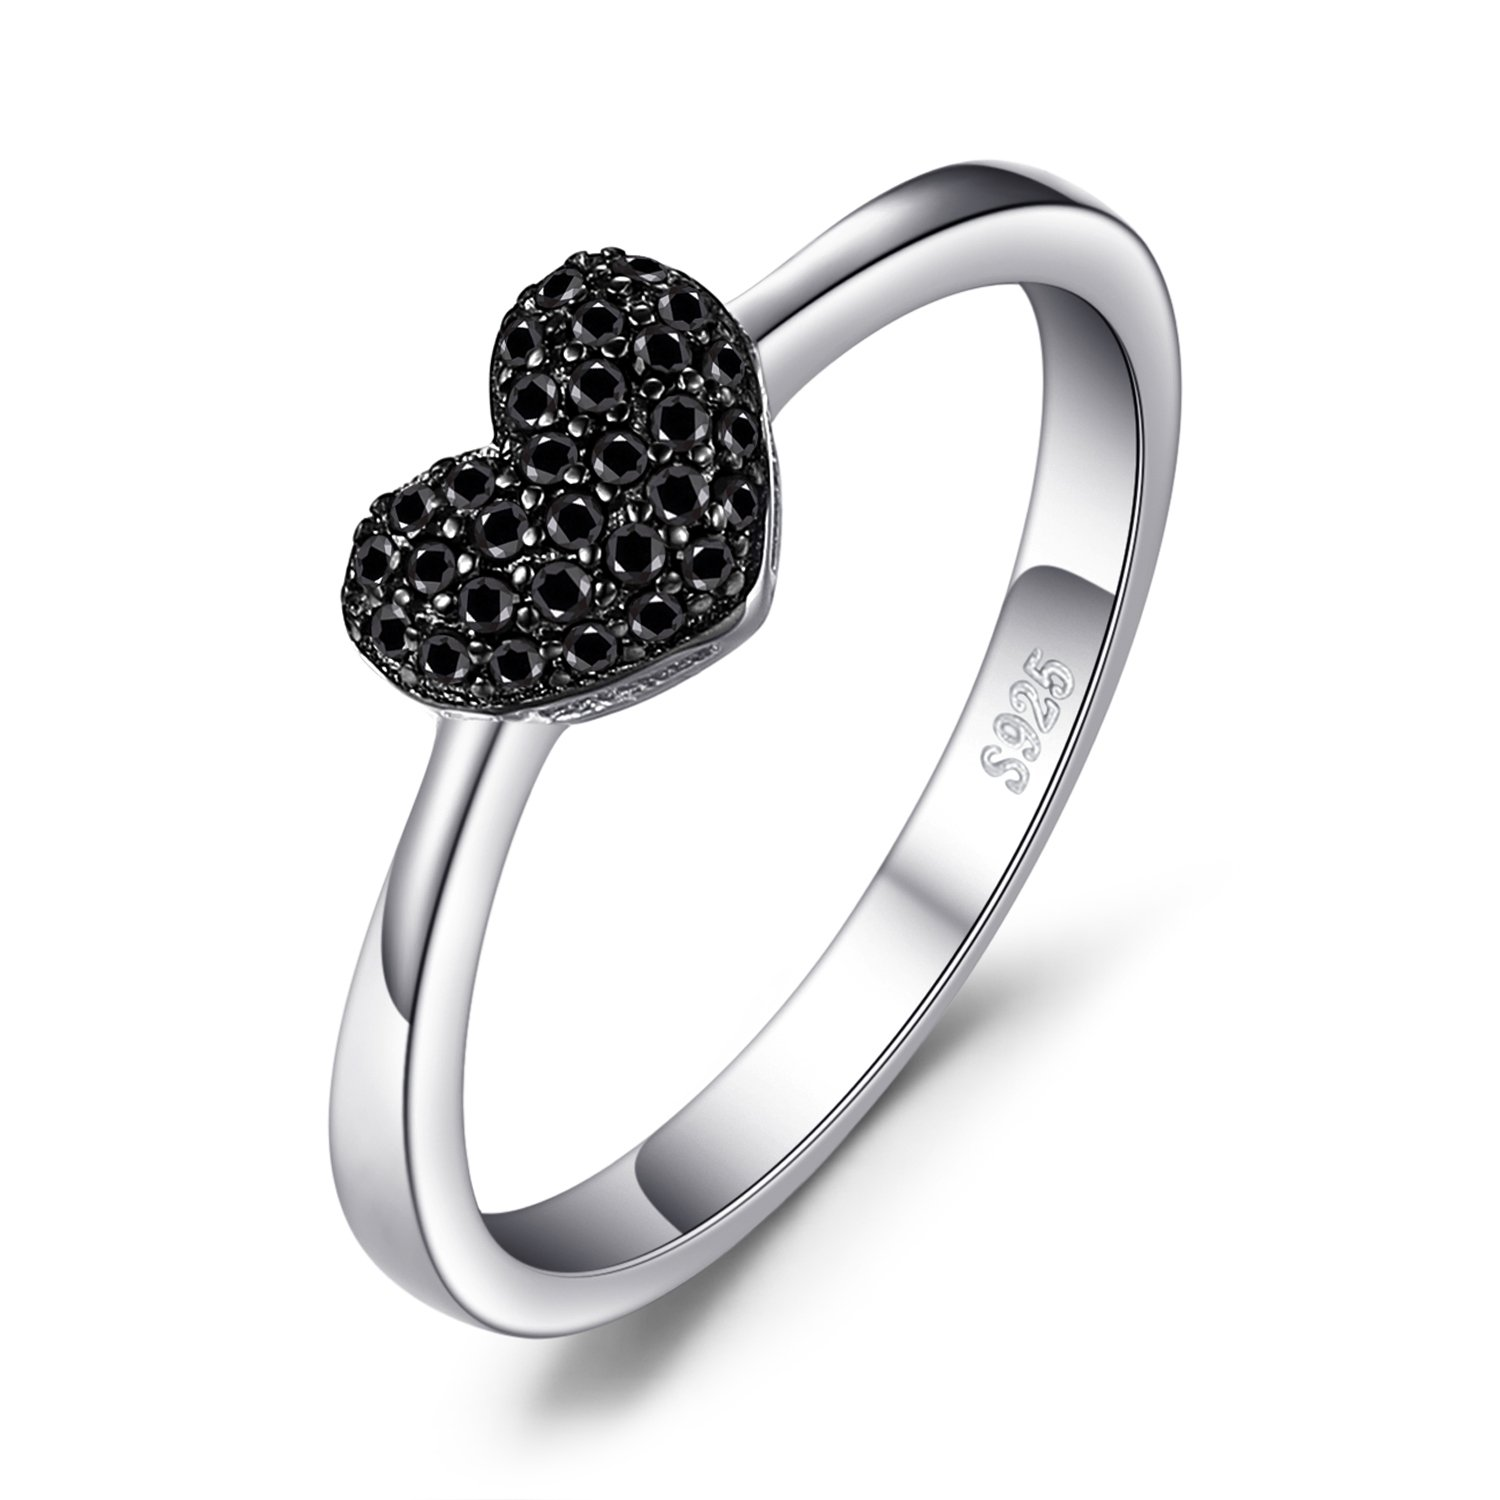 JewelryPalace 0.14ct Genuine Spinel Love Heart Ring 925 Sterling Silver